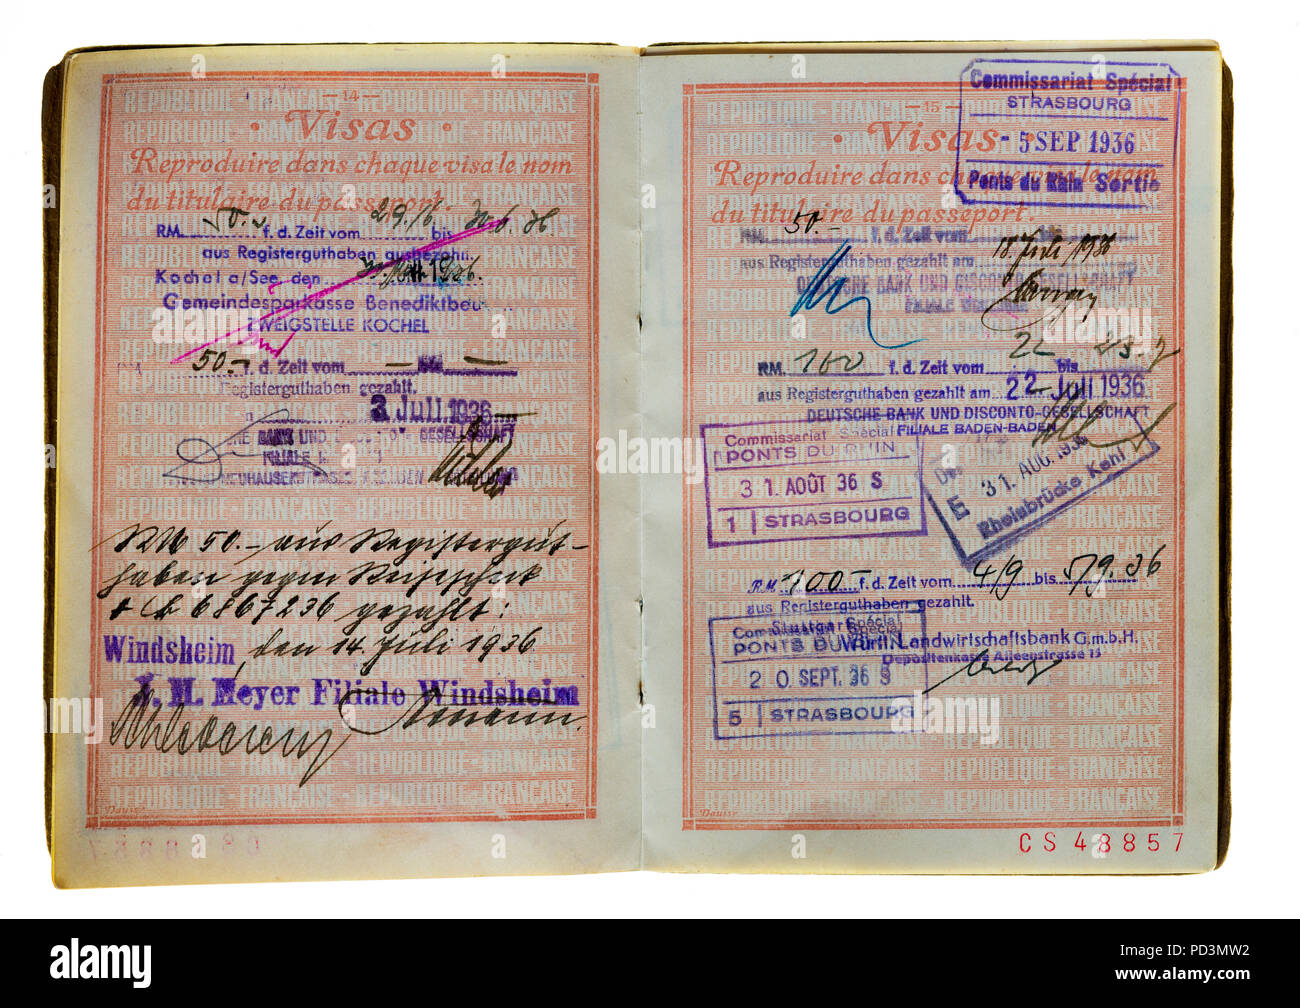 1935's vintage French passport, pages with 1936 German and French visas stamps marks, Stock Photo